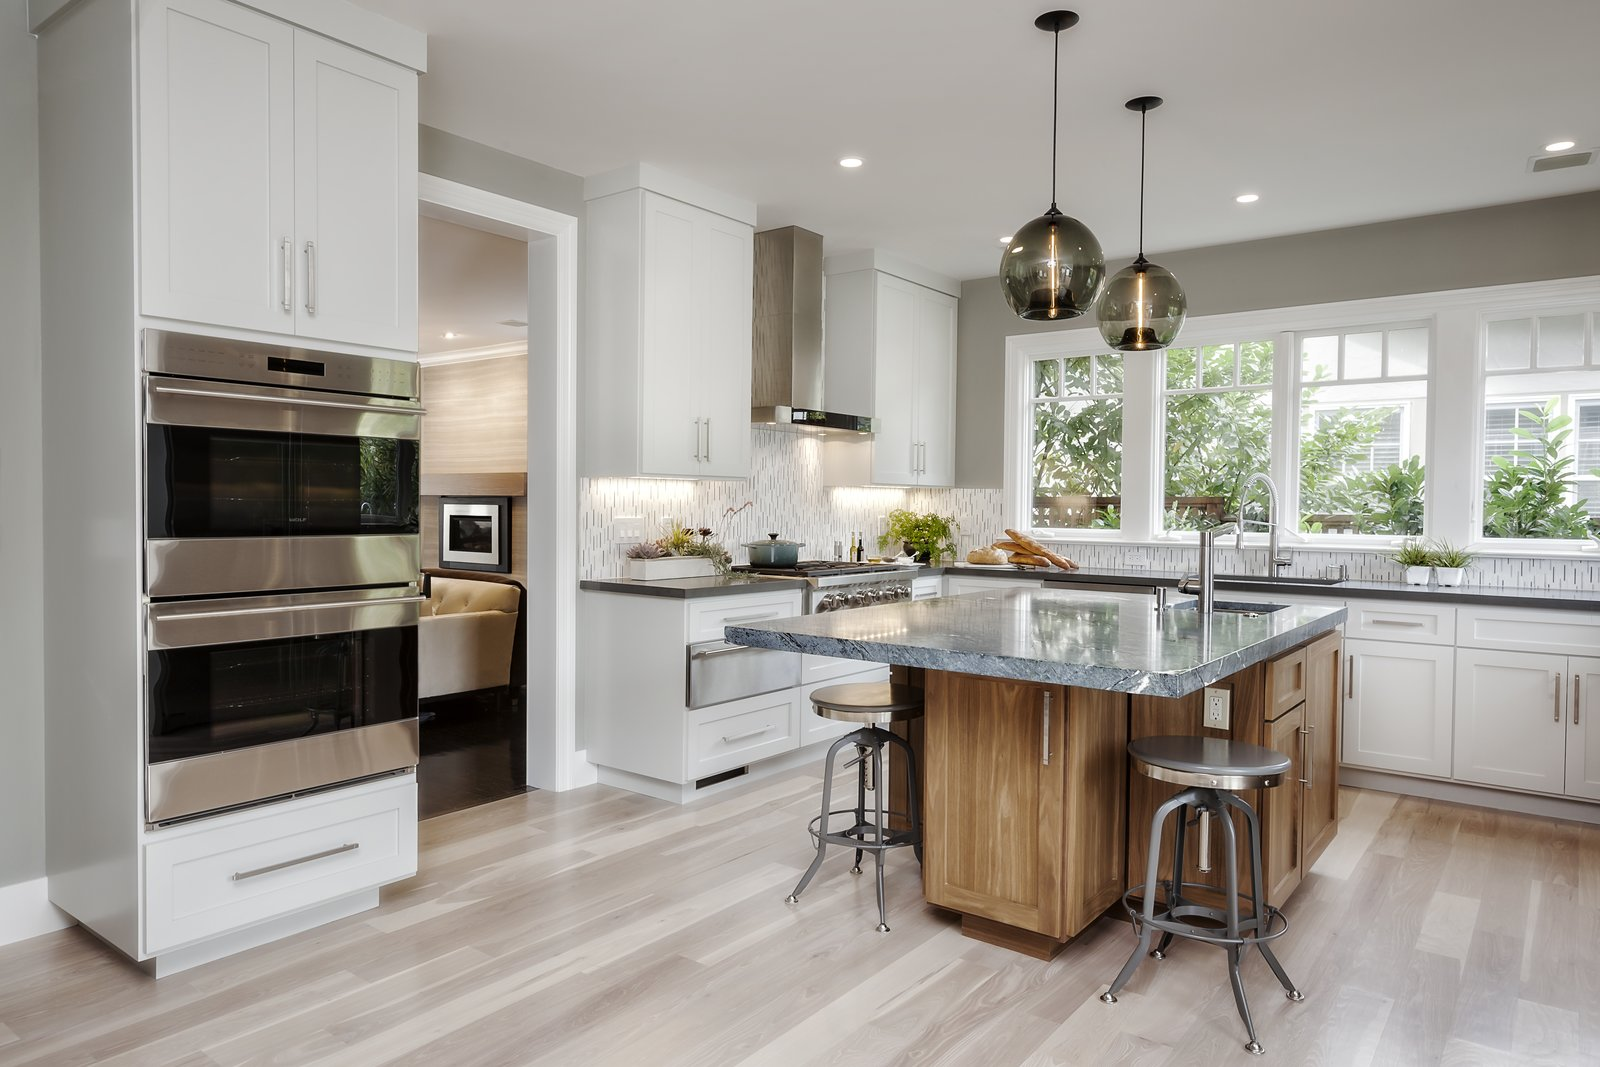 Contemporary Kitchen Island Pendants Spotted In California Home